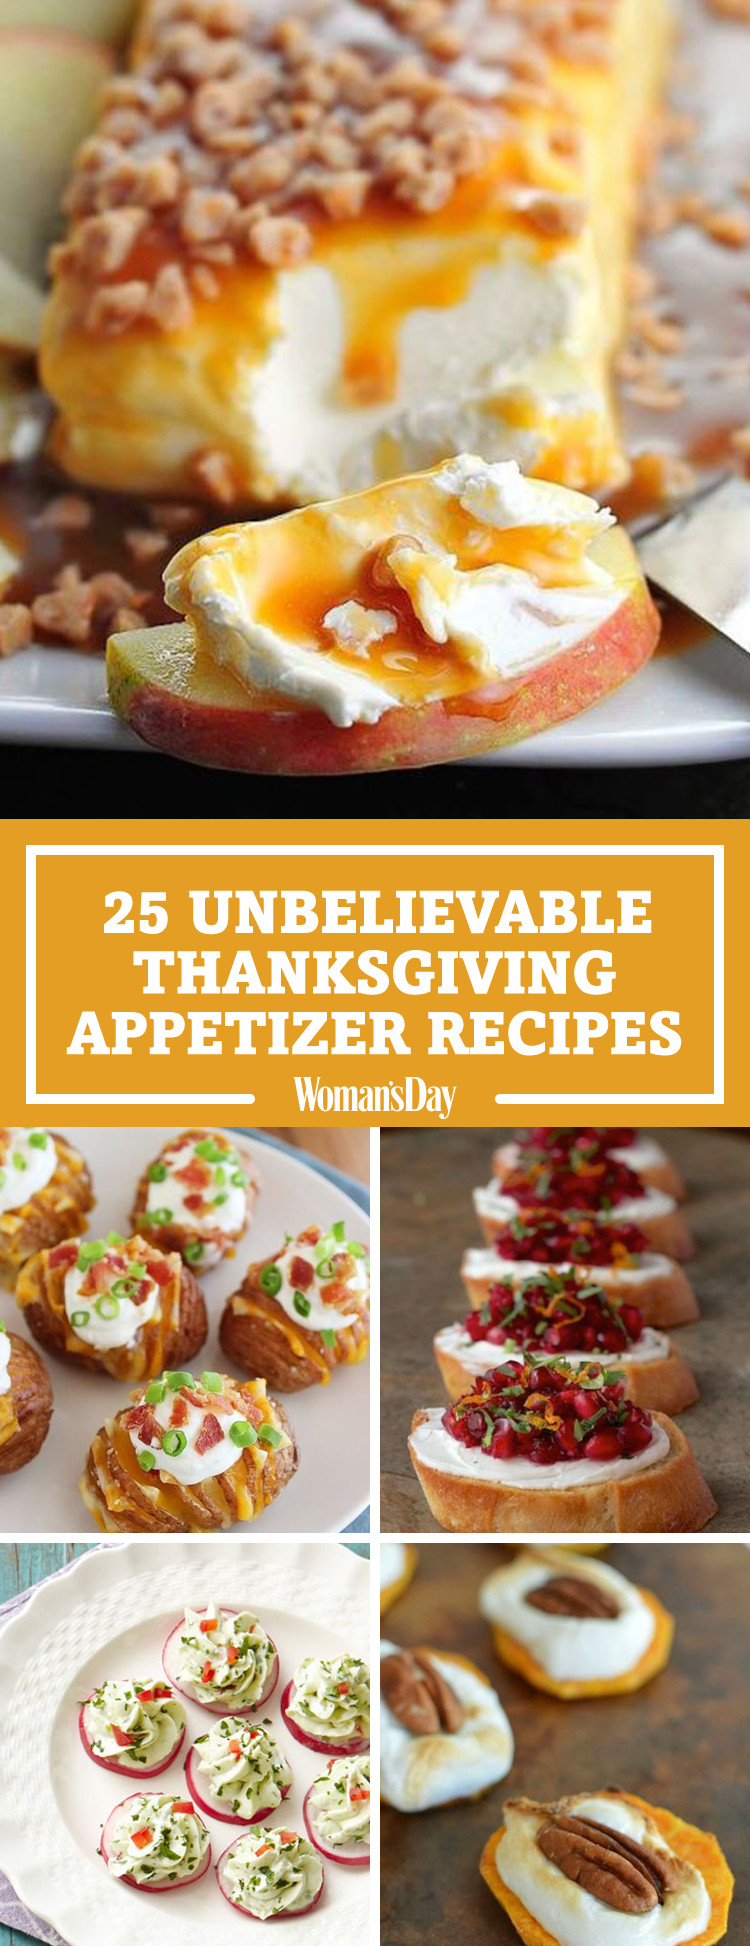 Easy Appetizers For Thanksgiving  34 Easy Thanksgiving Appetizers Best Recipes for